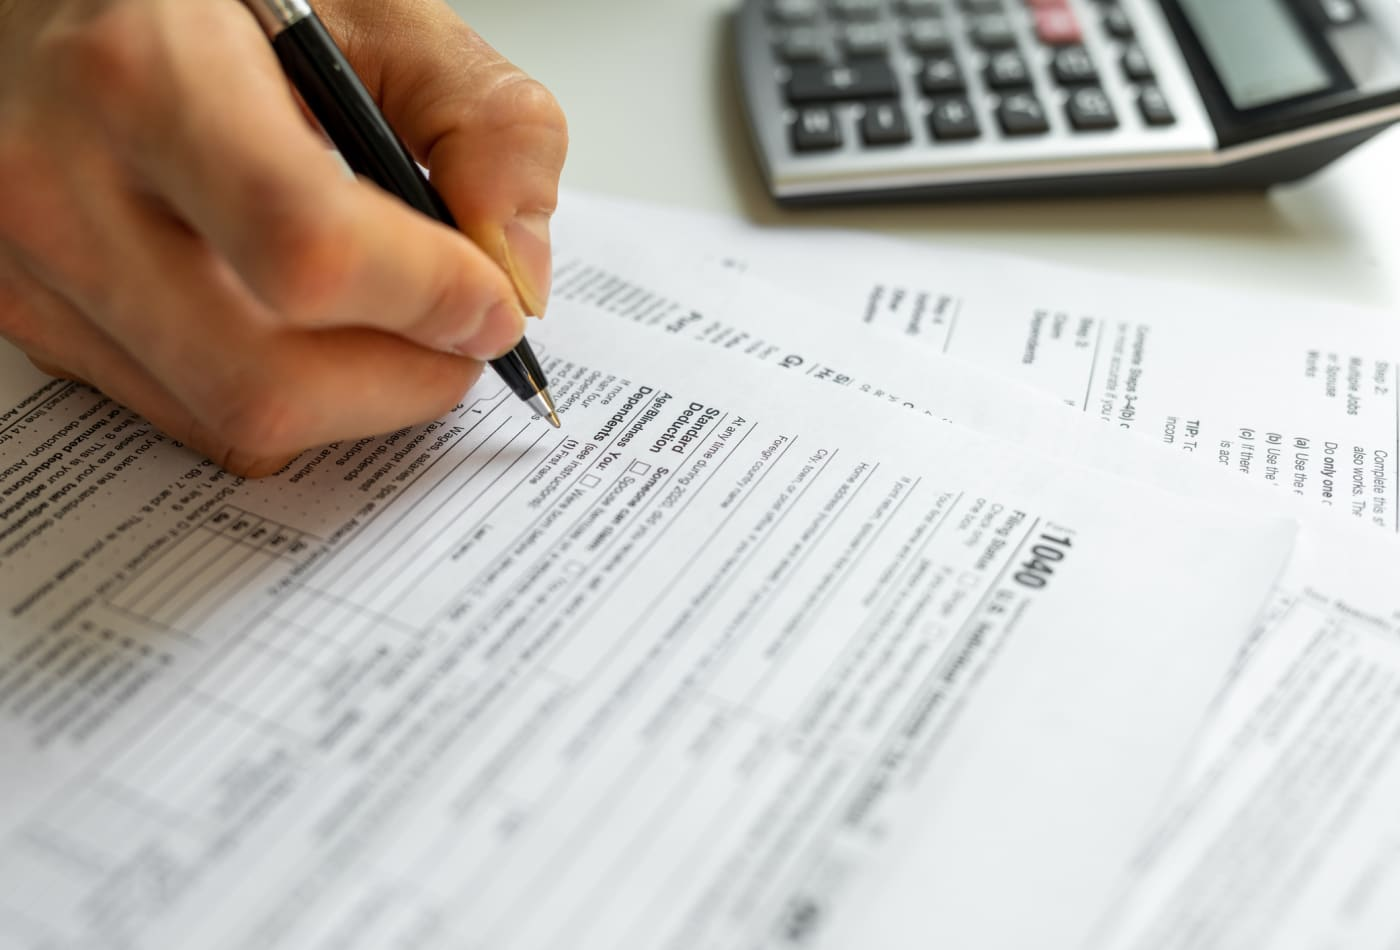 2020 tax returns are due to the IRS on May 17. Here are some last-minute filing tips